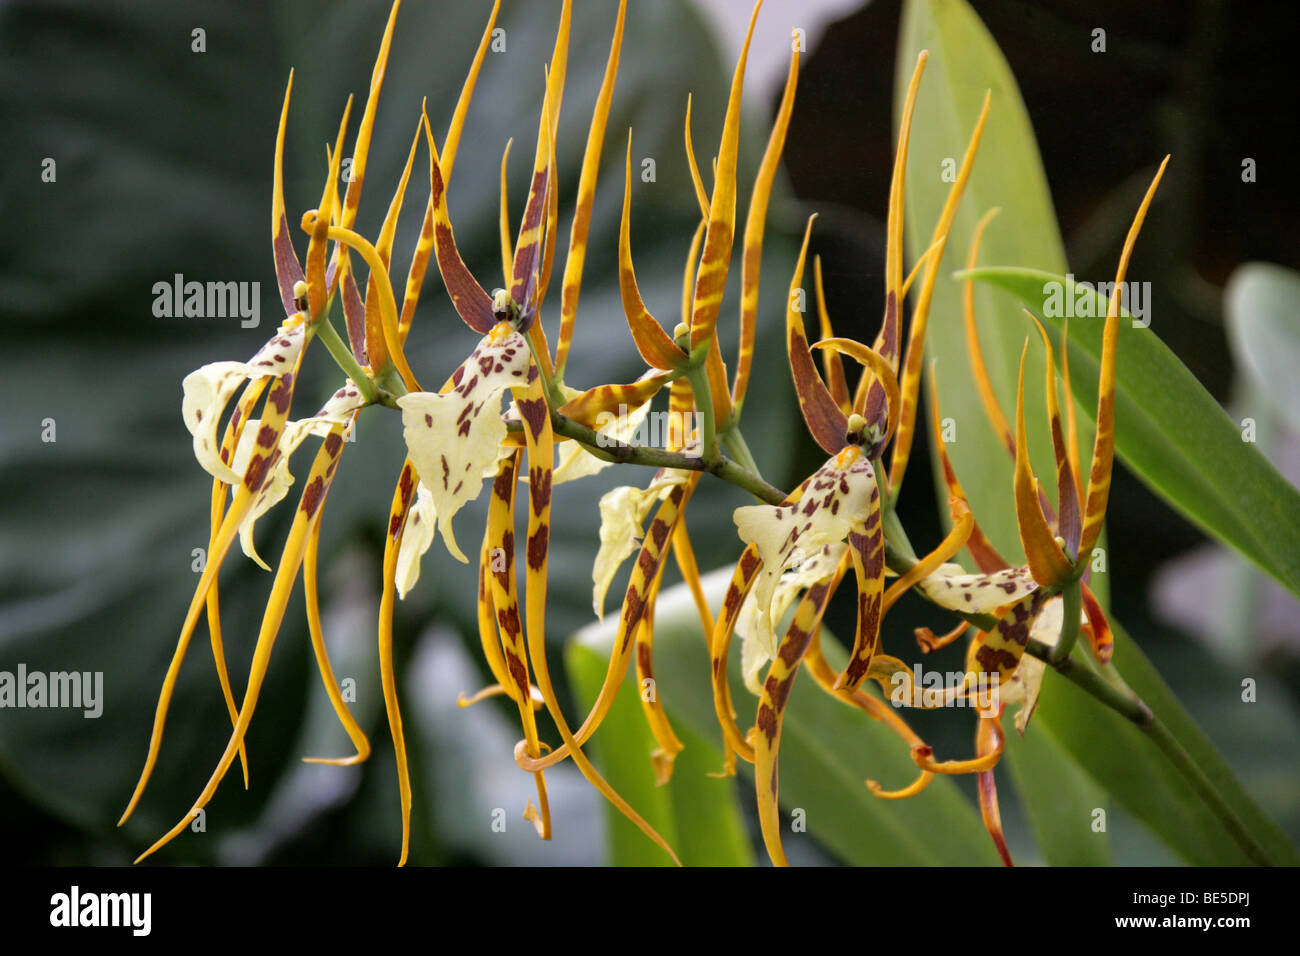 Spider Orchid, Brassia 'Chieftain', Orchidaceae, Oncidiinae, Cymbidieae. - Stock Image